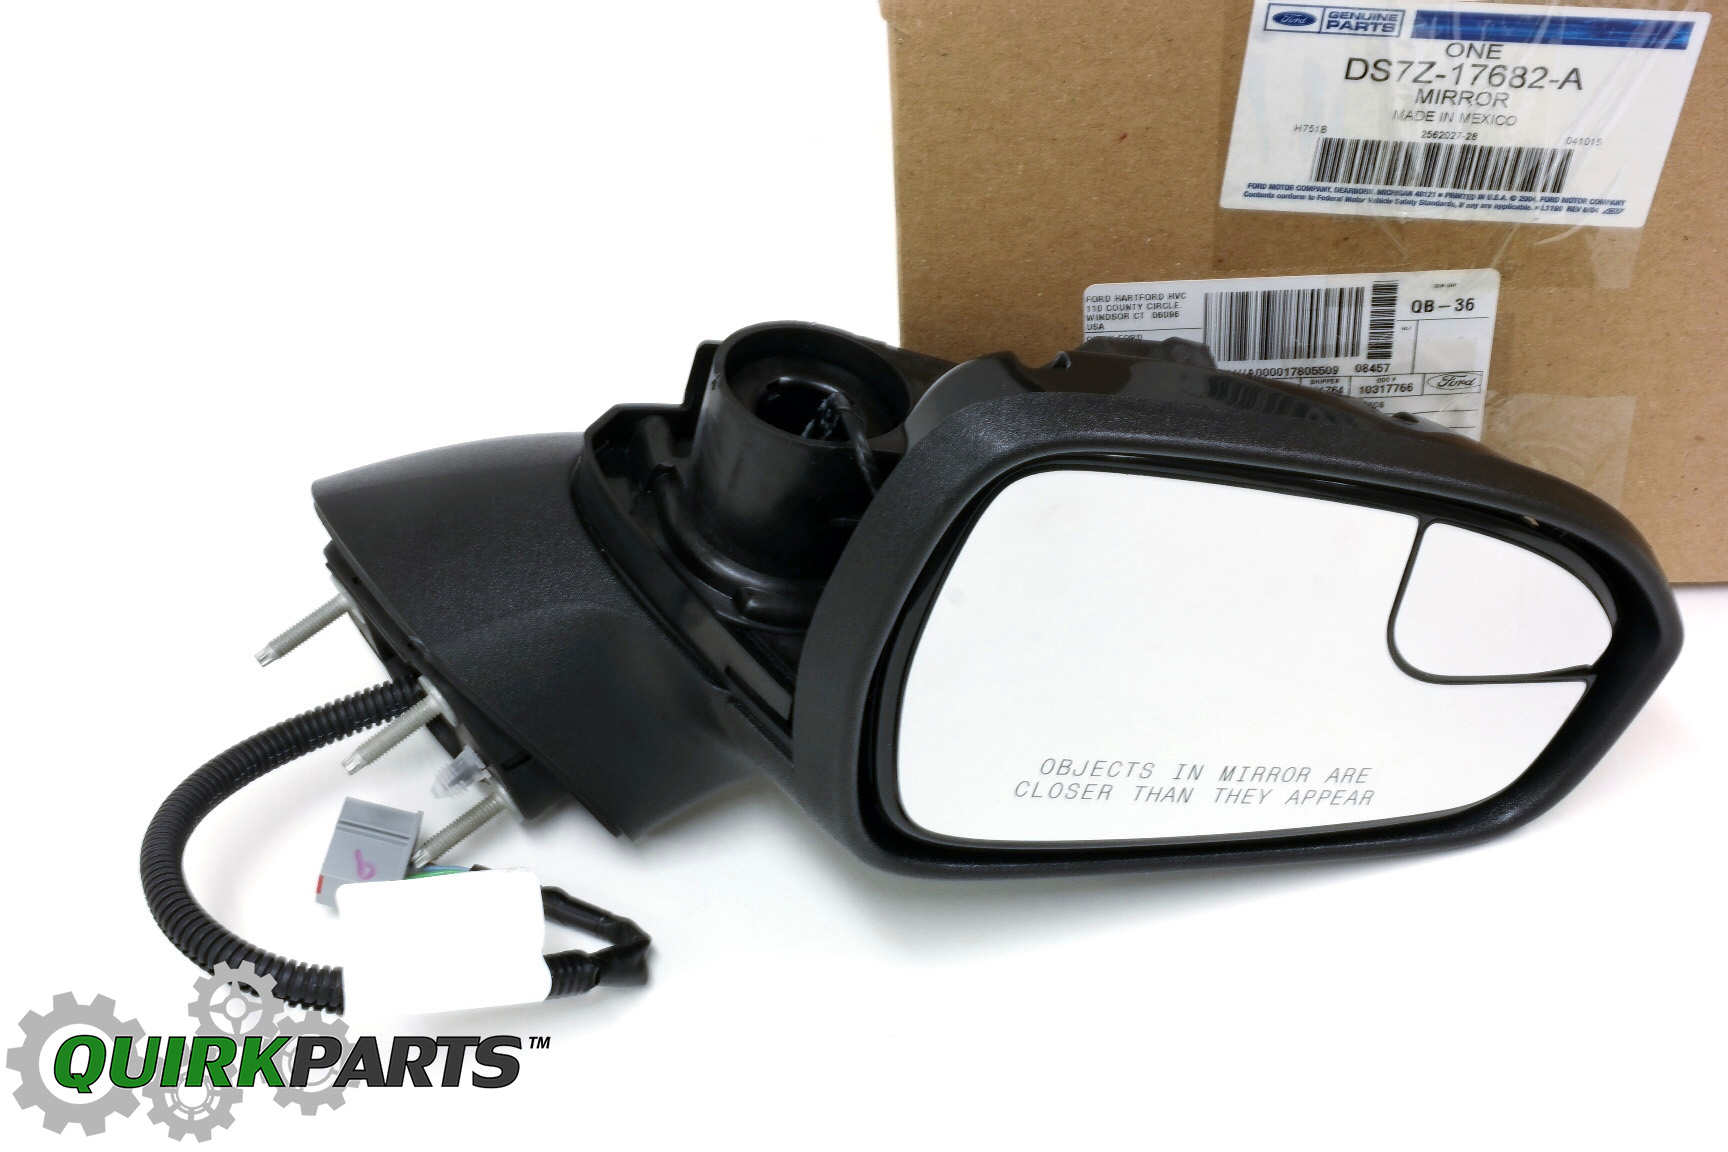 DS7Z17682A_1 2013 2015 ford fusion right passenger side view power mirror oem CB Radio Wiring Diagram at creativeand.co